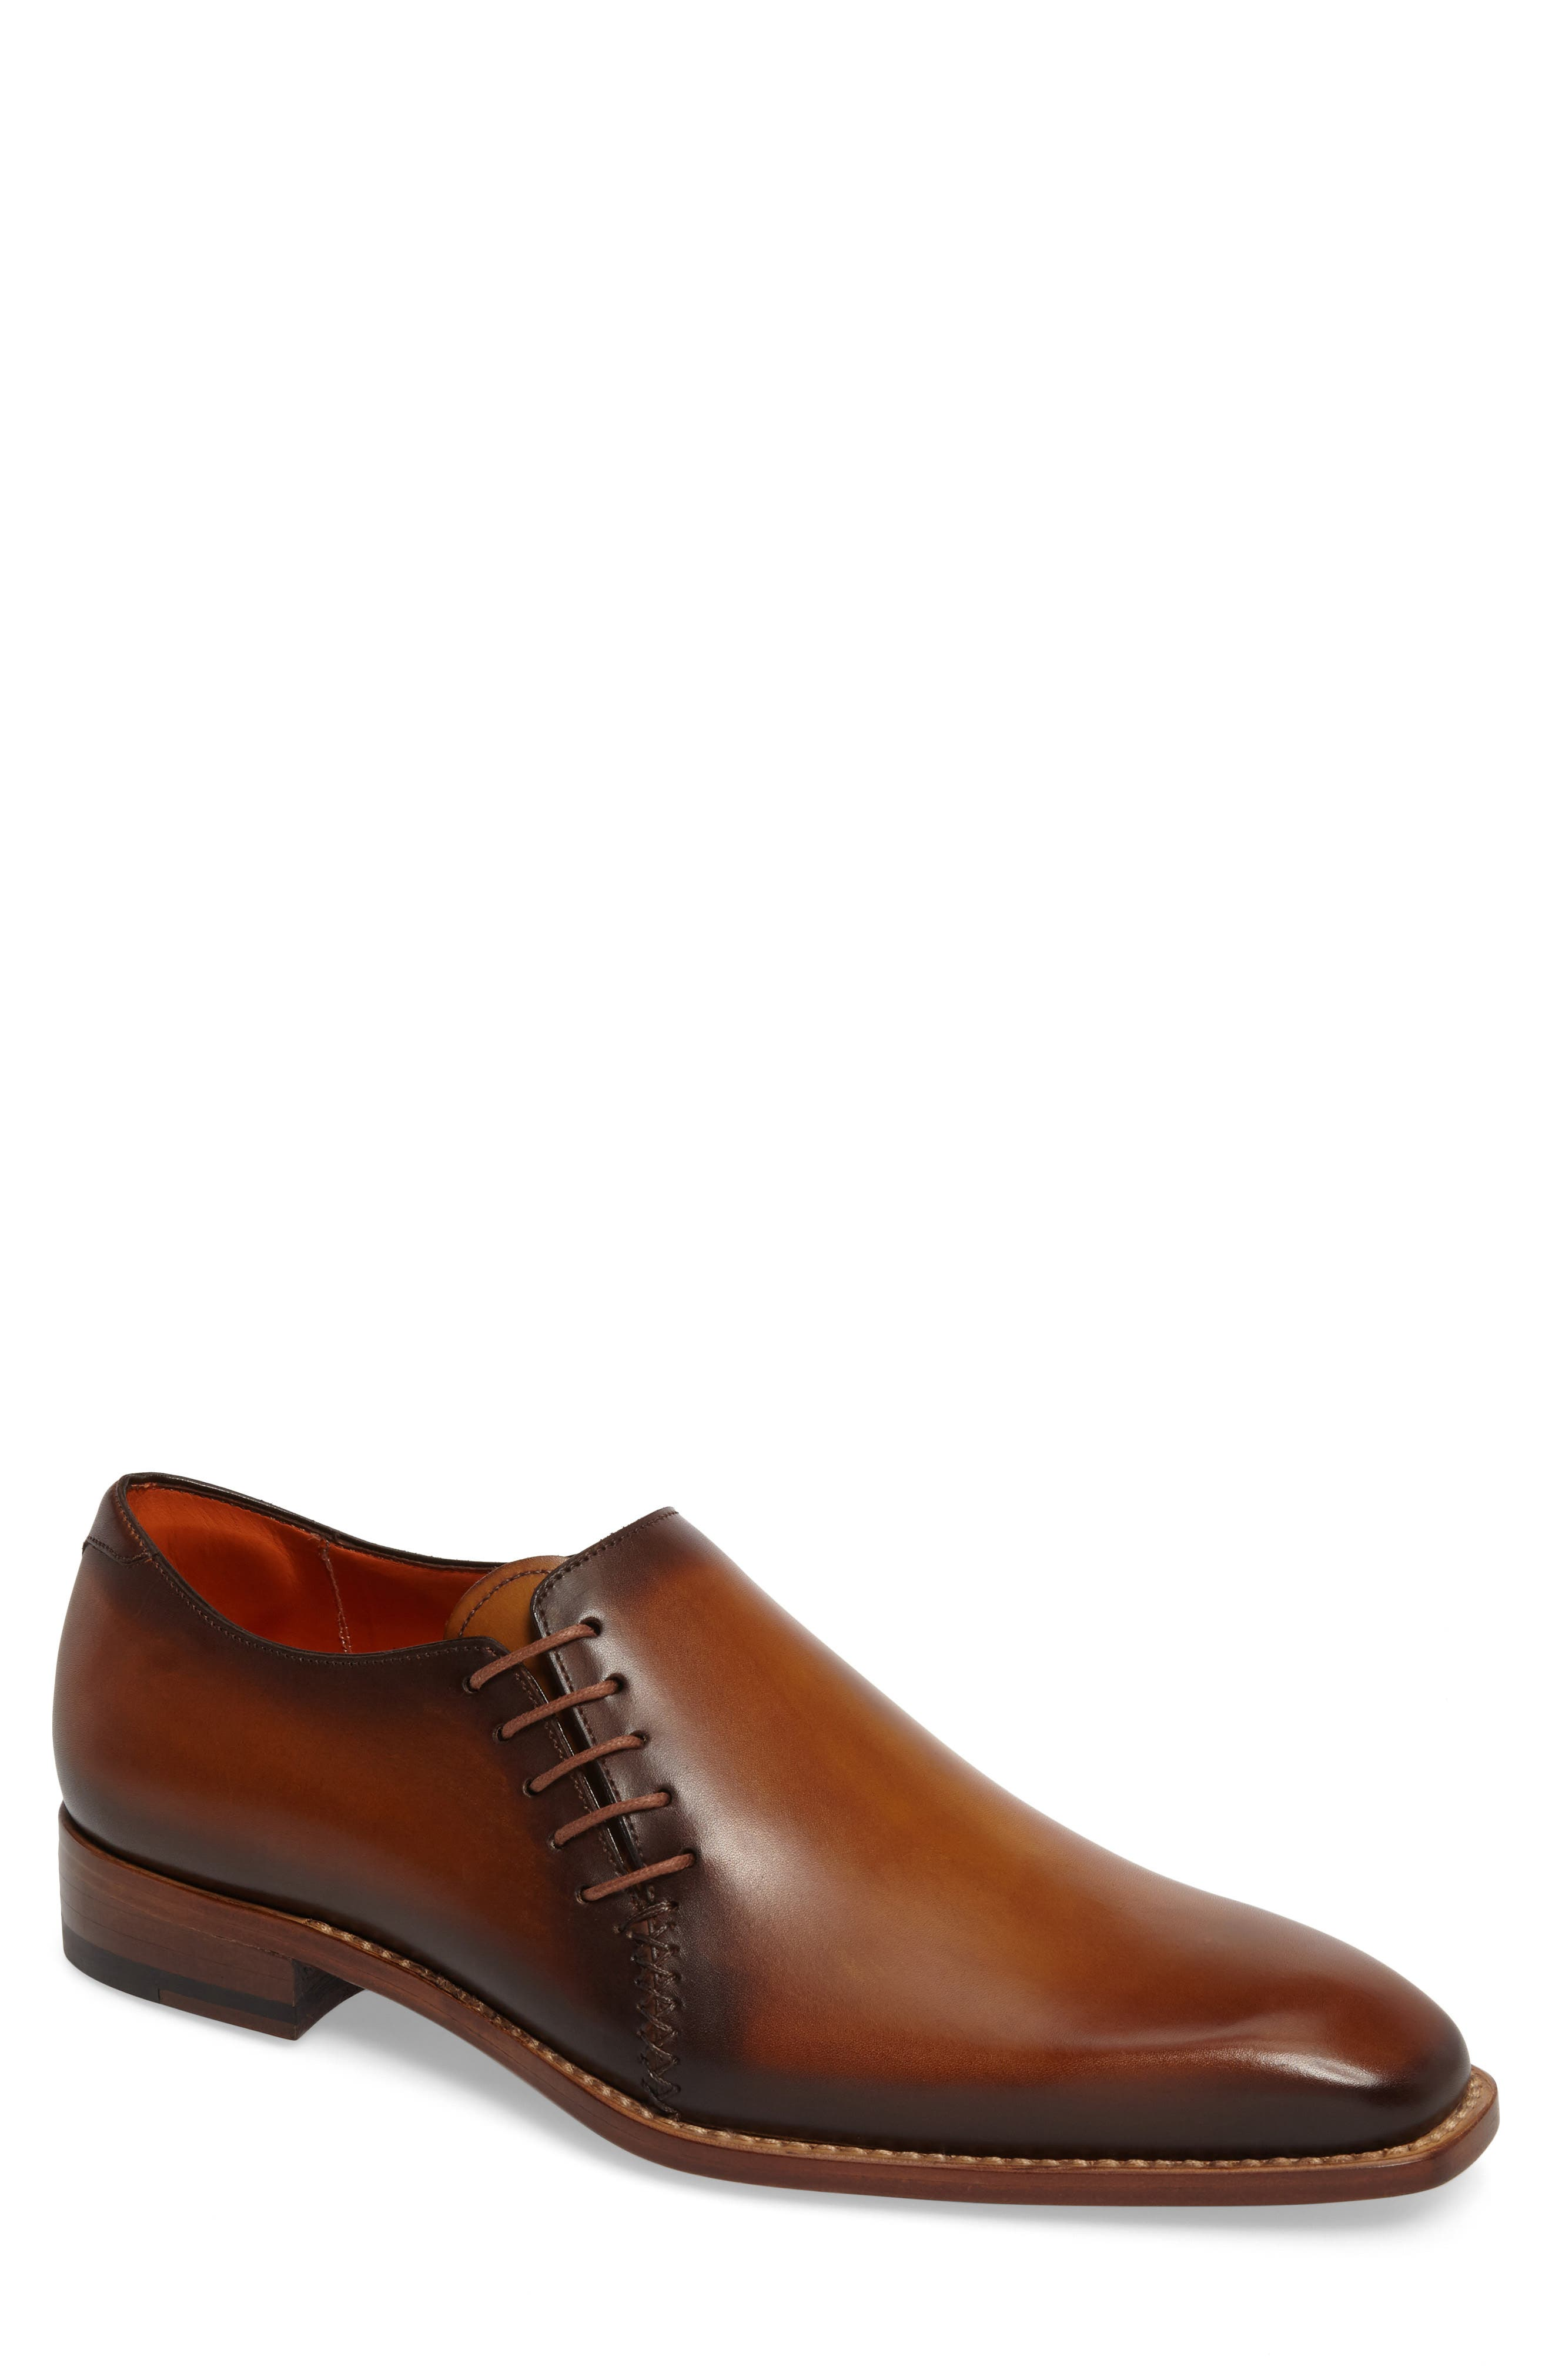 Master Wholecut Oxford,                         Main,                         color, Honey Leather